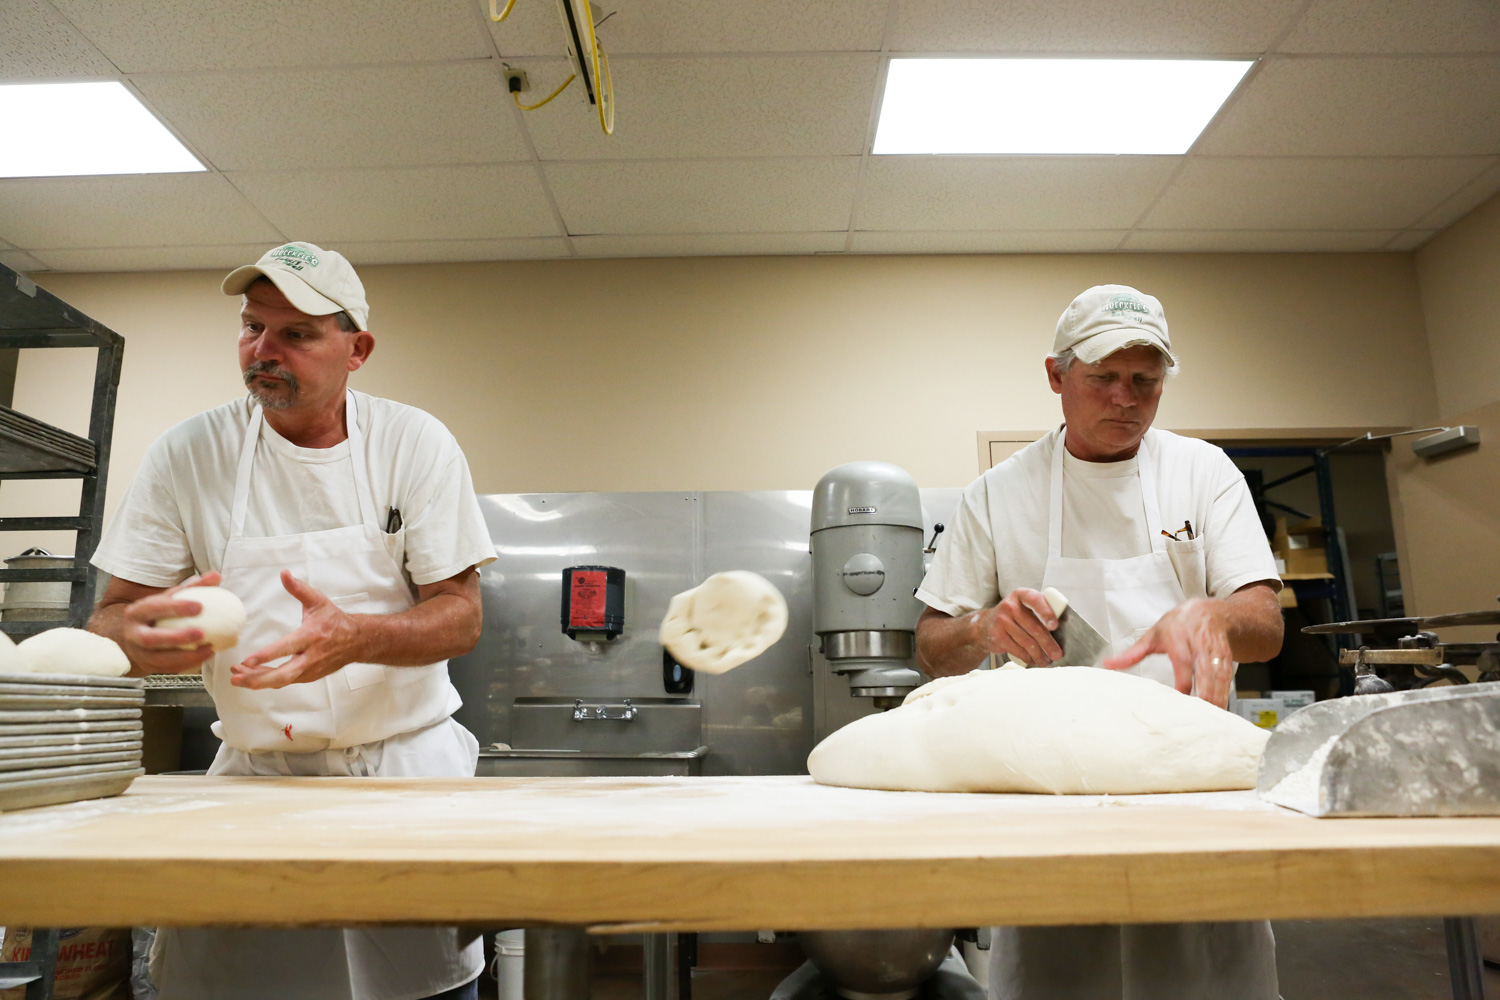 At their family bakery, Paul (right) tosses a piece of dough (used for donuts) to his brother Joe. Each night they prepare about 300 pounds of dough for their signature donuts, in addition to pastries, breads, cakes and others goods.